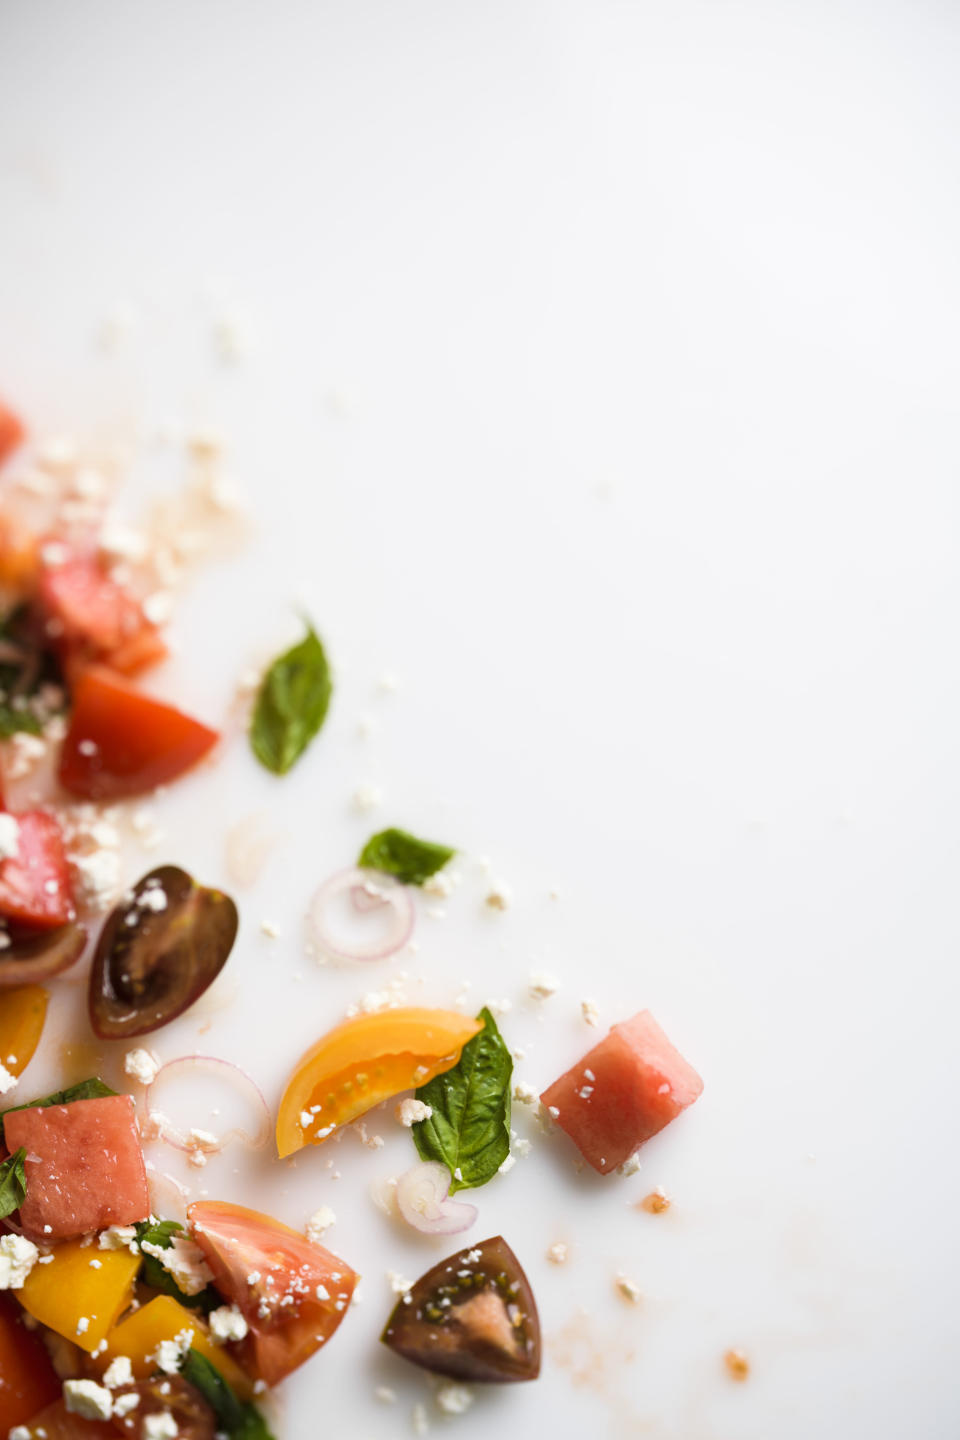 This image released by Milk Street shows a recipe for watermelon salad with tomato, basil and goat cheese. (Milk Street via AP)